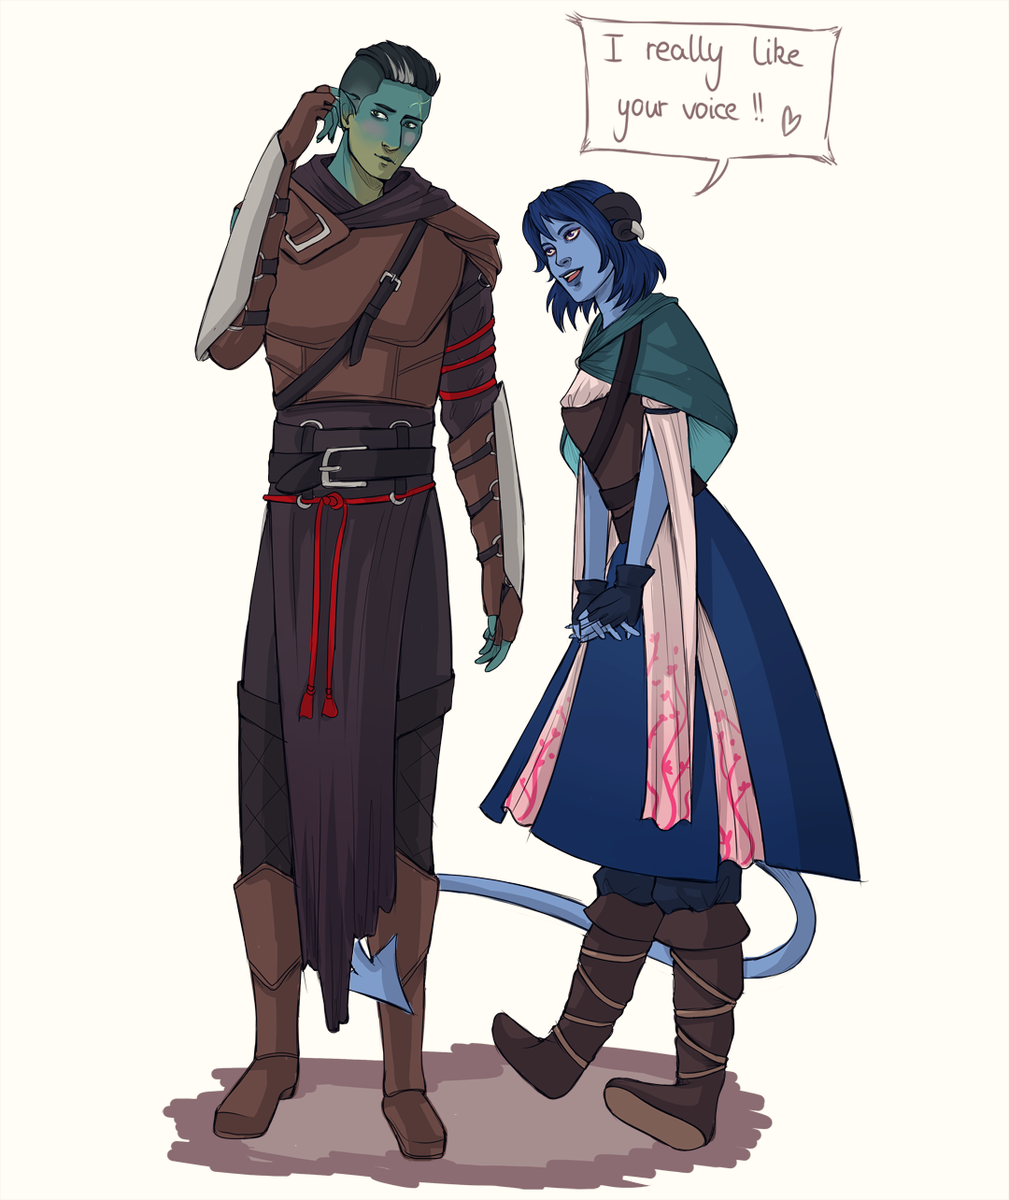 Lea On Twitter Jester And Fjord Interactions Are The Cutest Criticalrole Criticalrolefanart Oh wait that's a human person; jester and fjord interactions